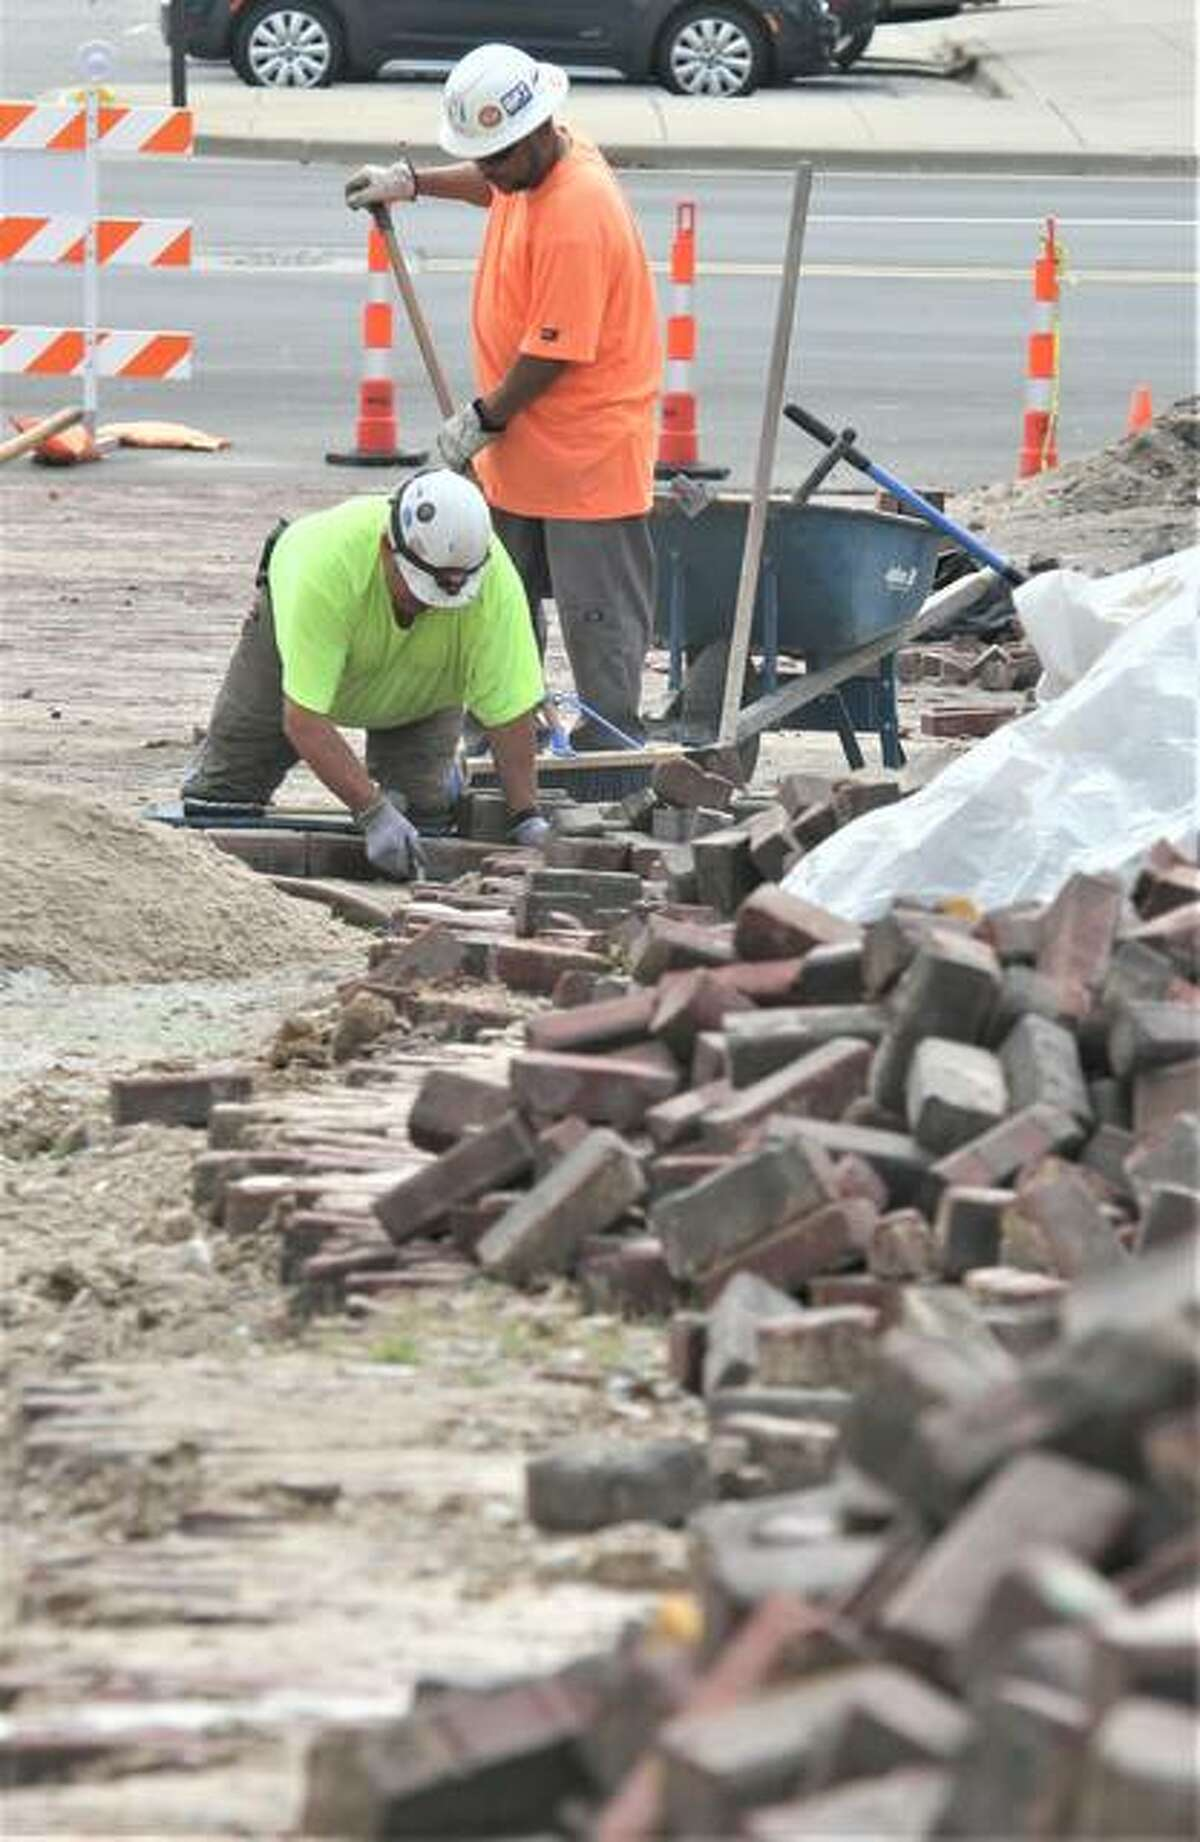 Workers for MAV Masonry replace paving bricks on Market Street in Alton Thursday afternoon in front of the Stratford Hotel. The bricks are being reset after being removed for a sewer replacement project.